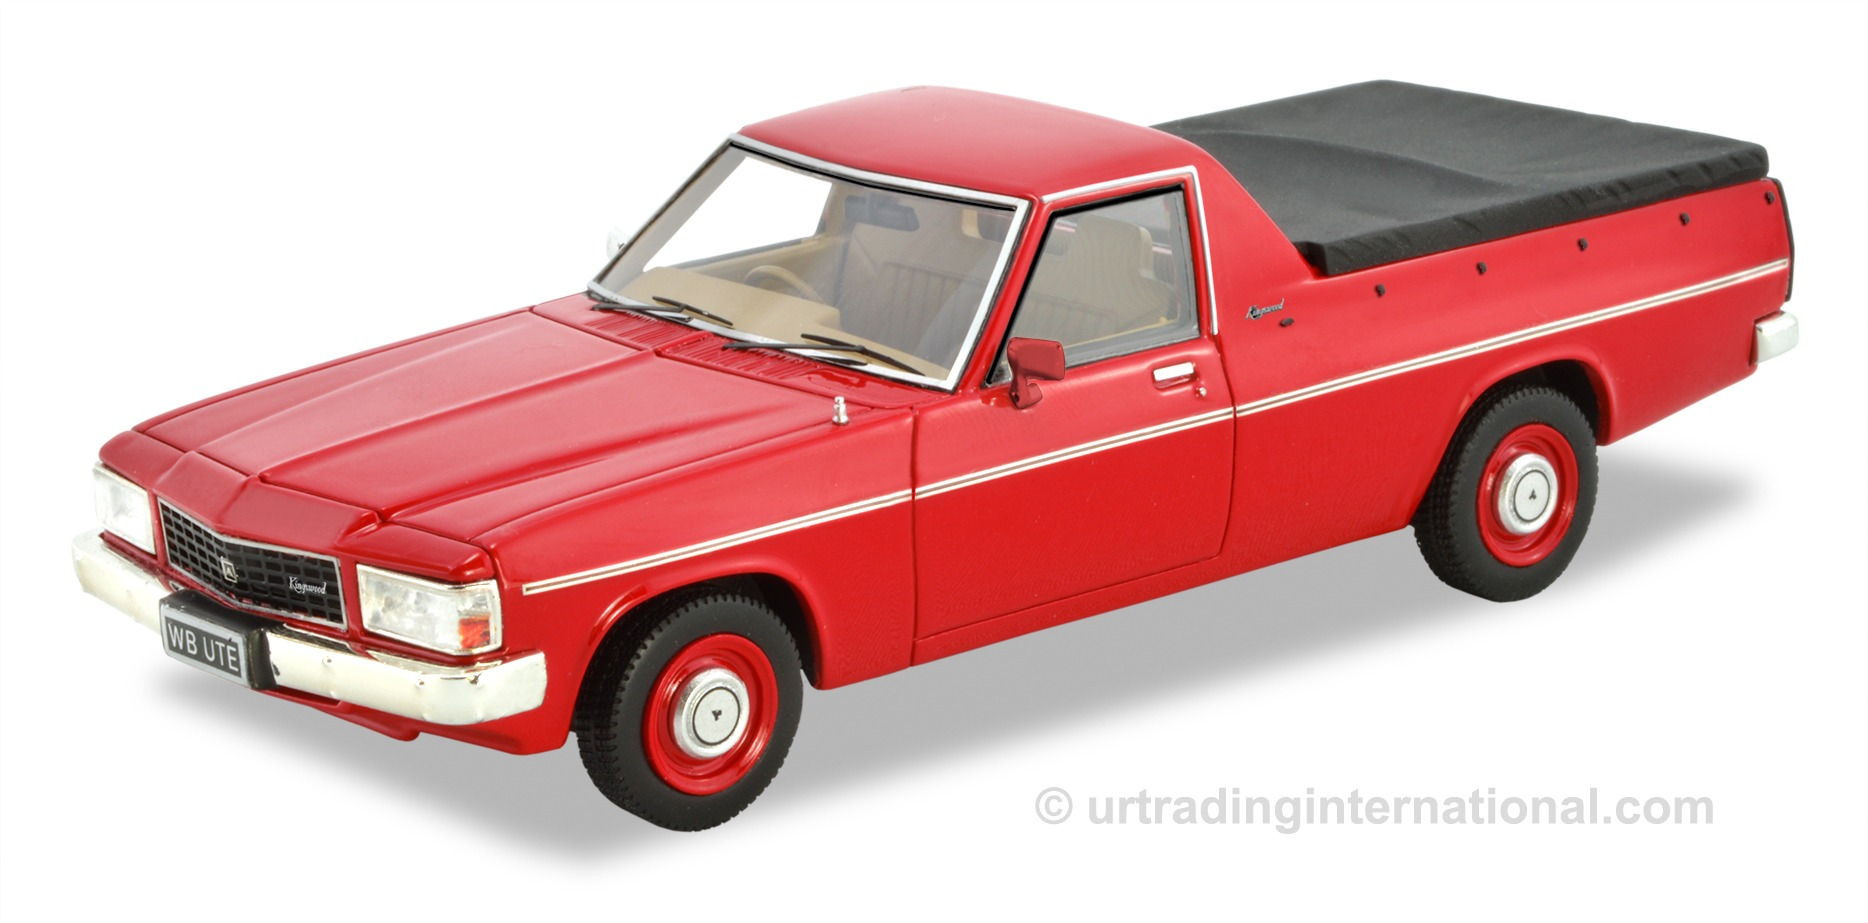 1980-84 WB Ute – Red